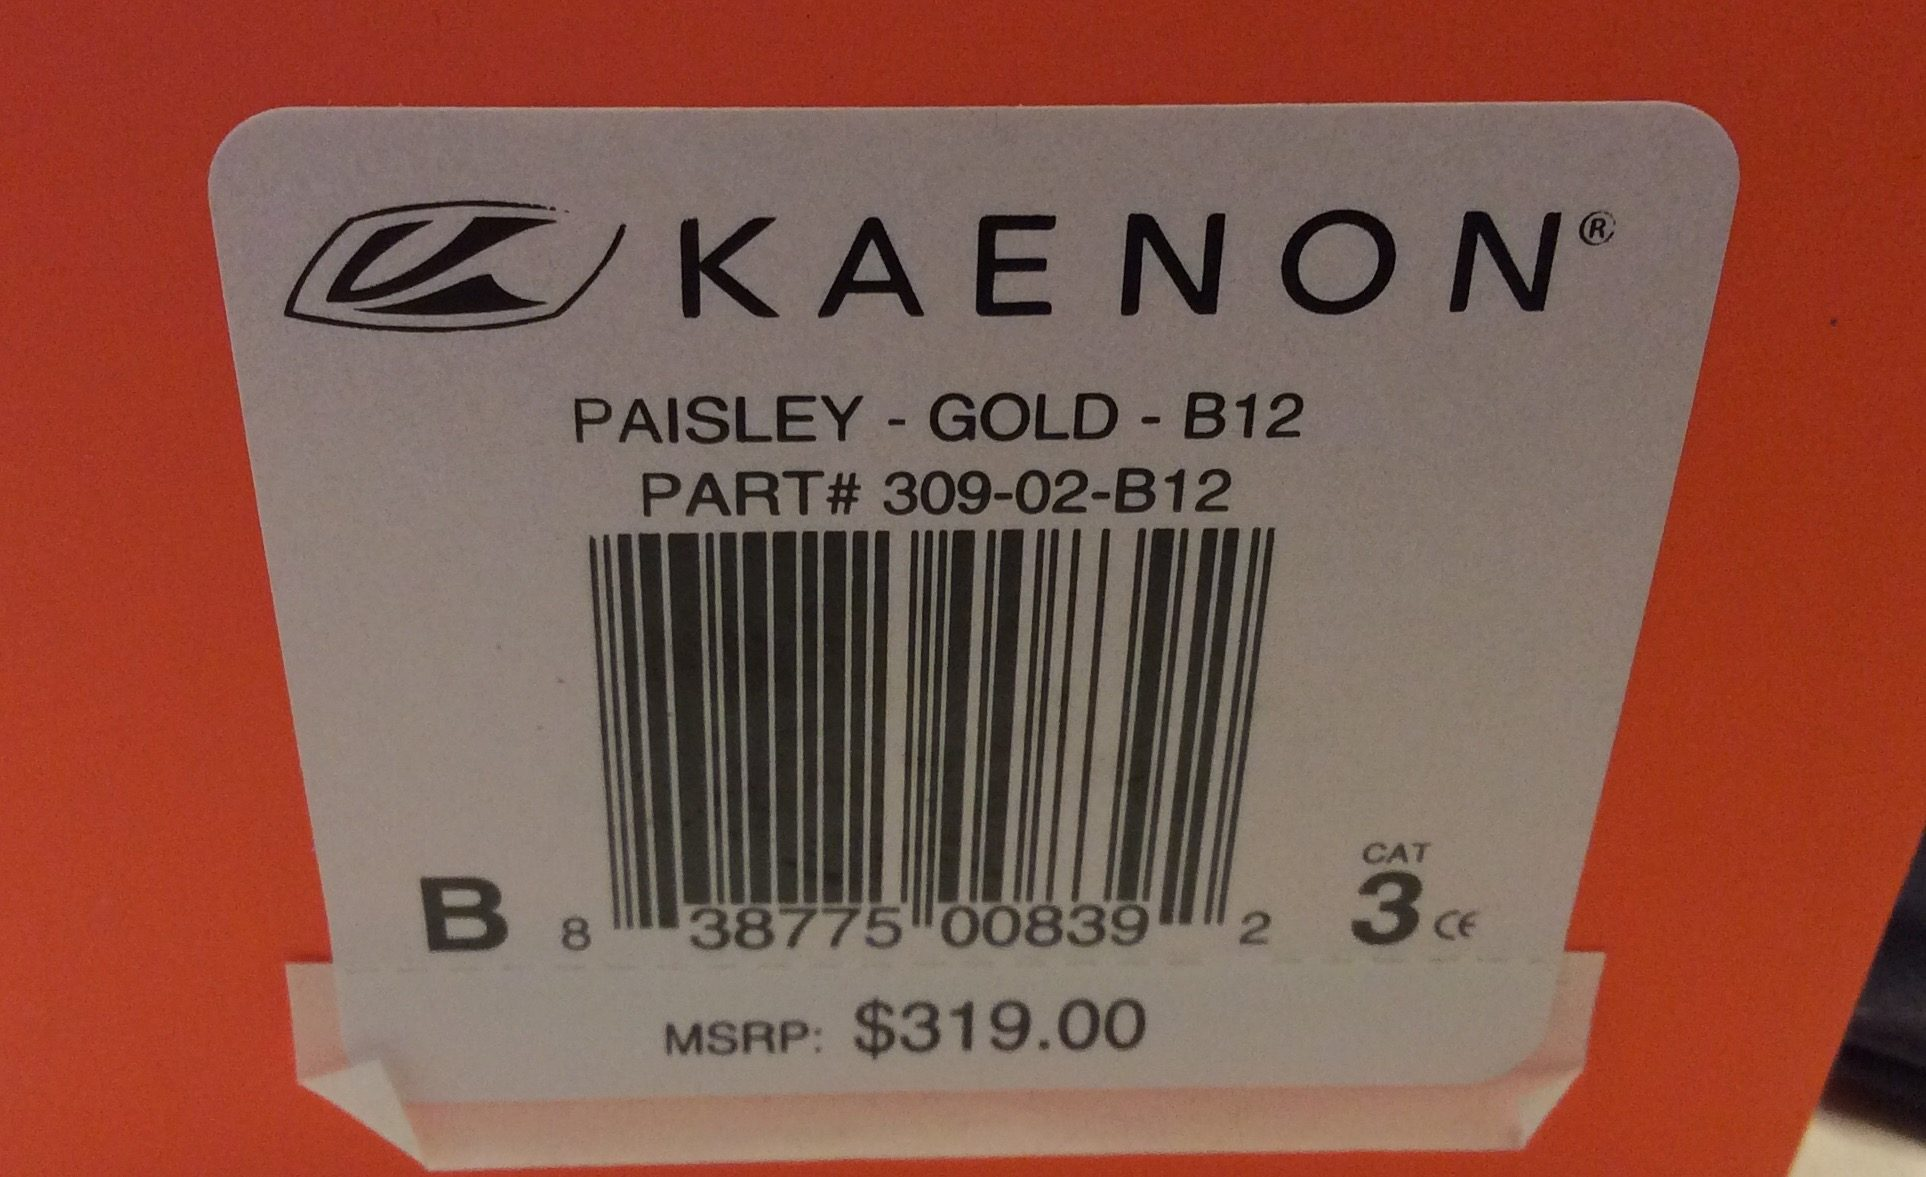 Kaenon Paisley Sunglasses Aviator - Gold - B12 Brown POLARIZED 309-02-B12